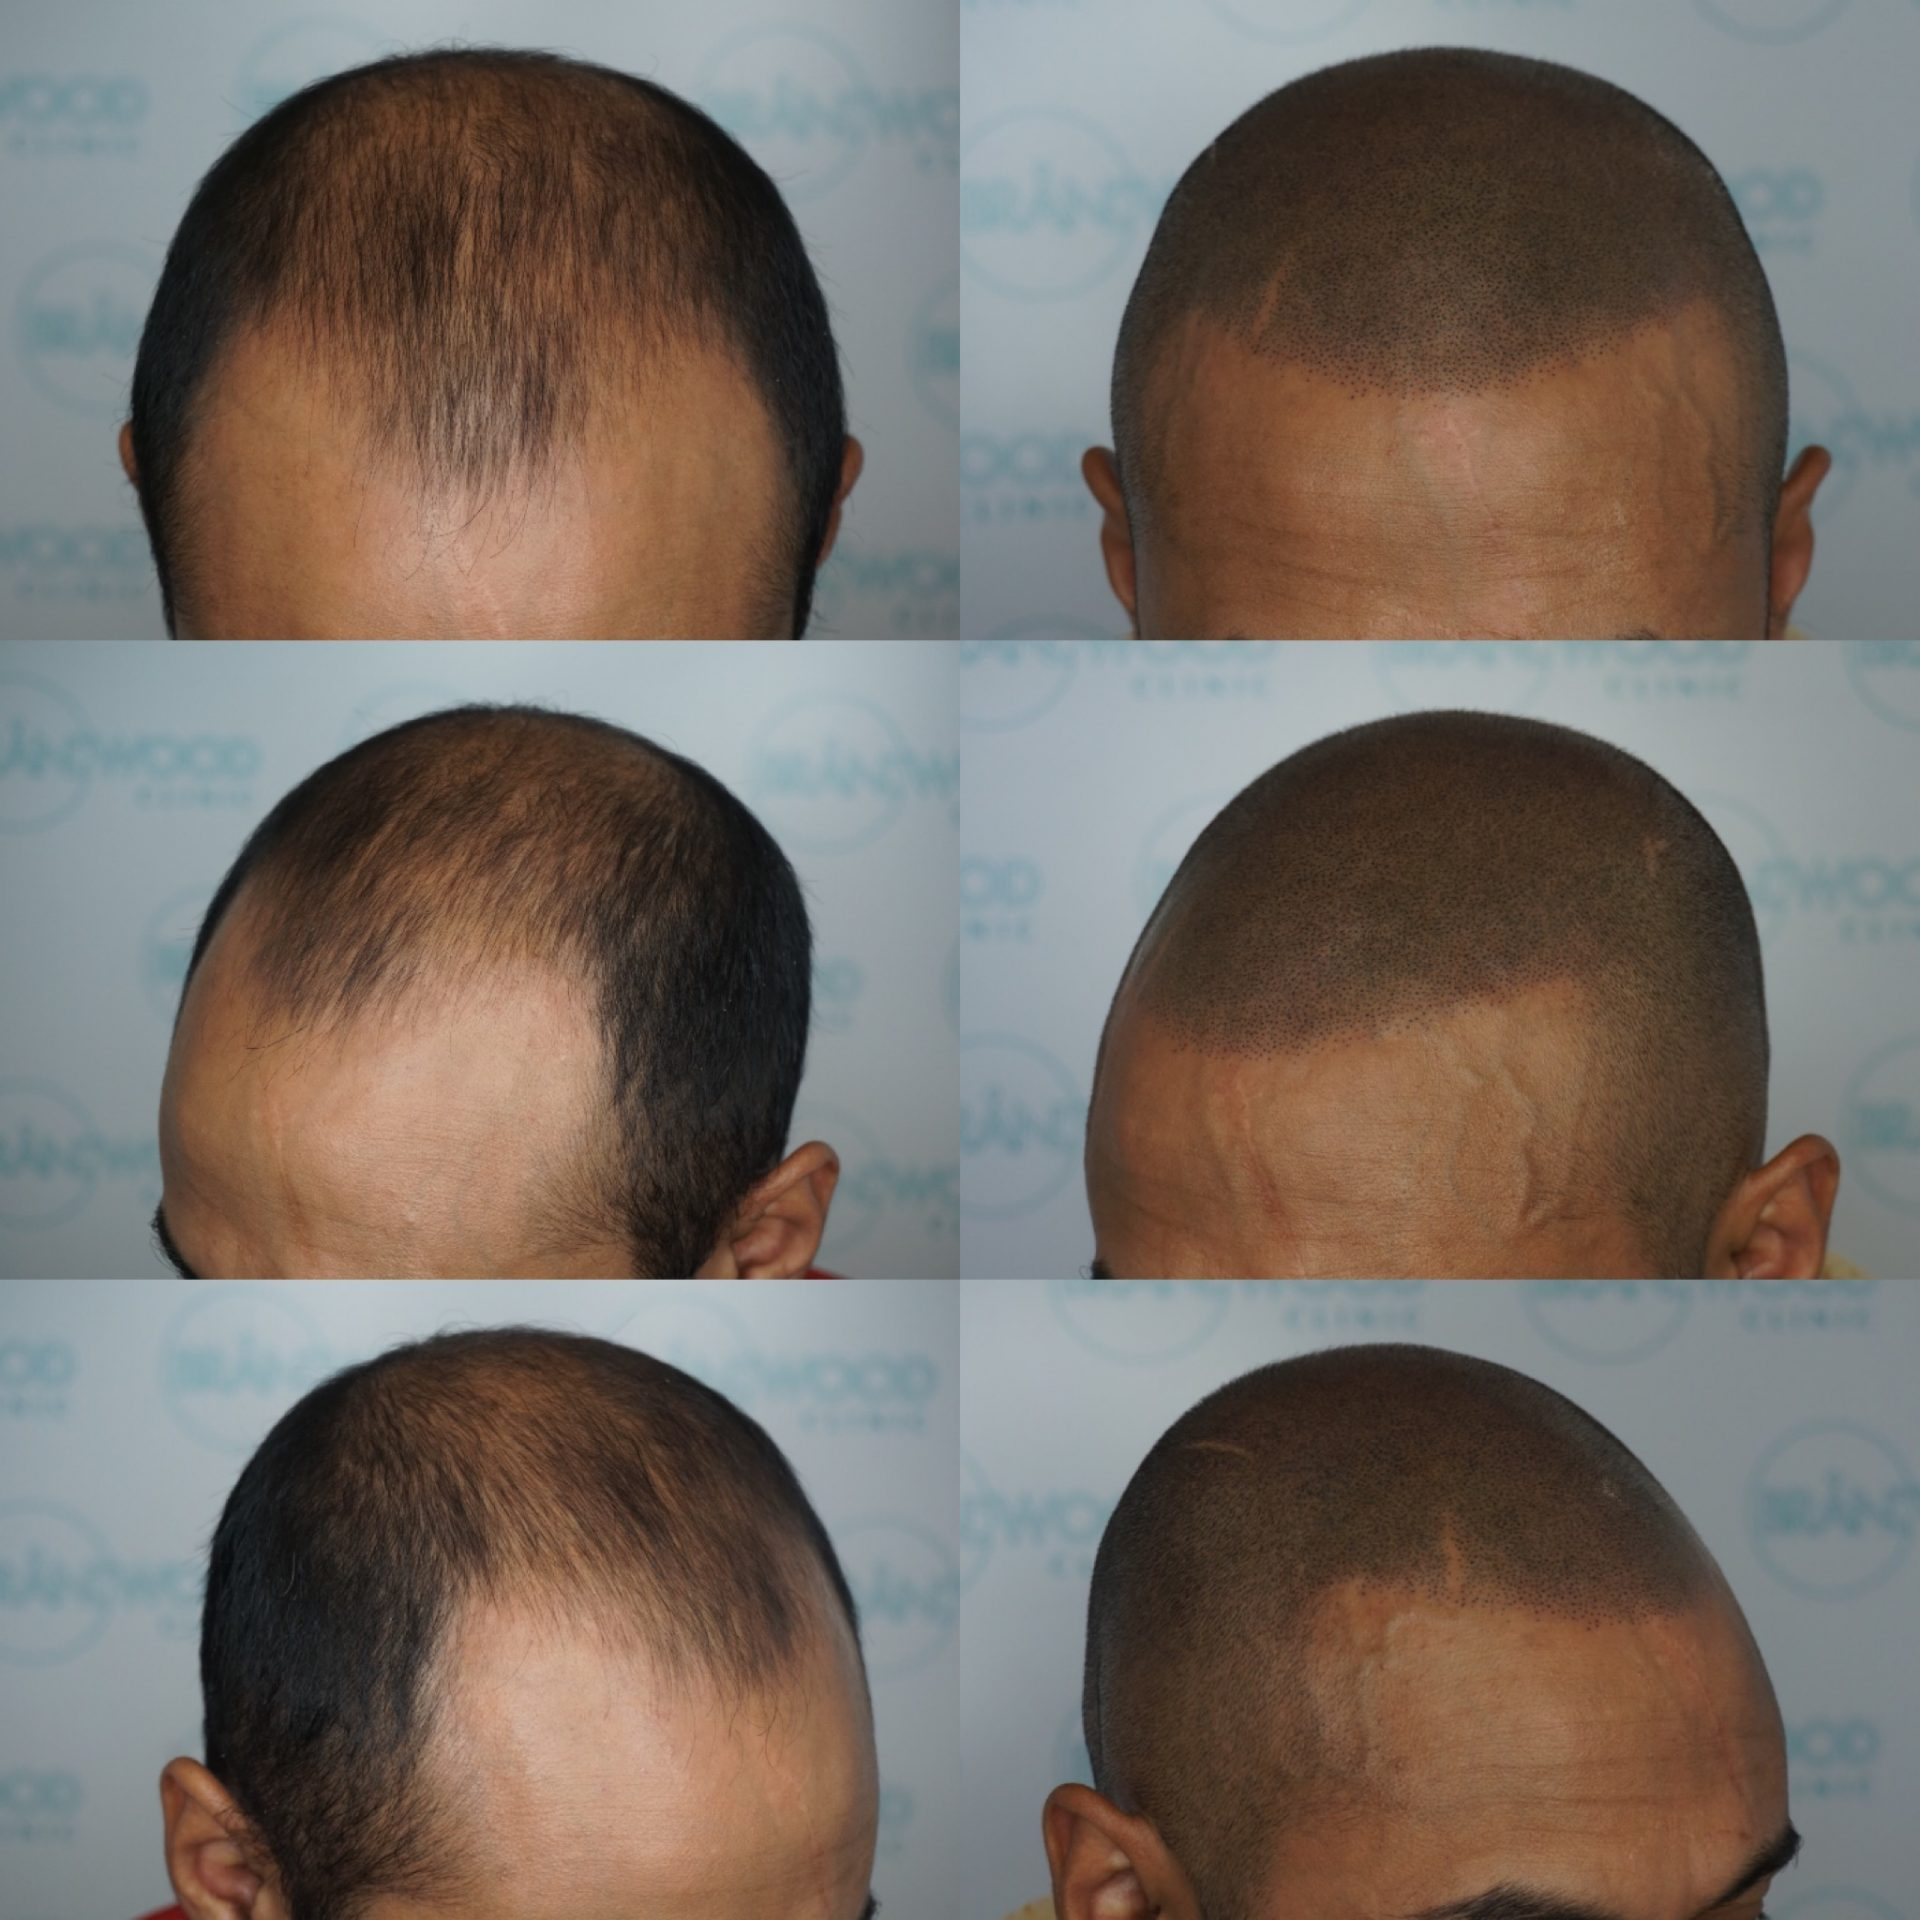 hair tattoo, Muslim, hair thinning